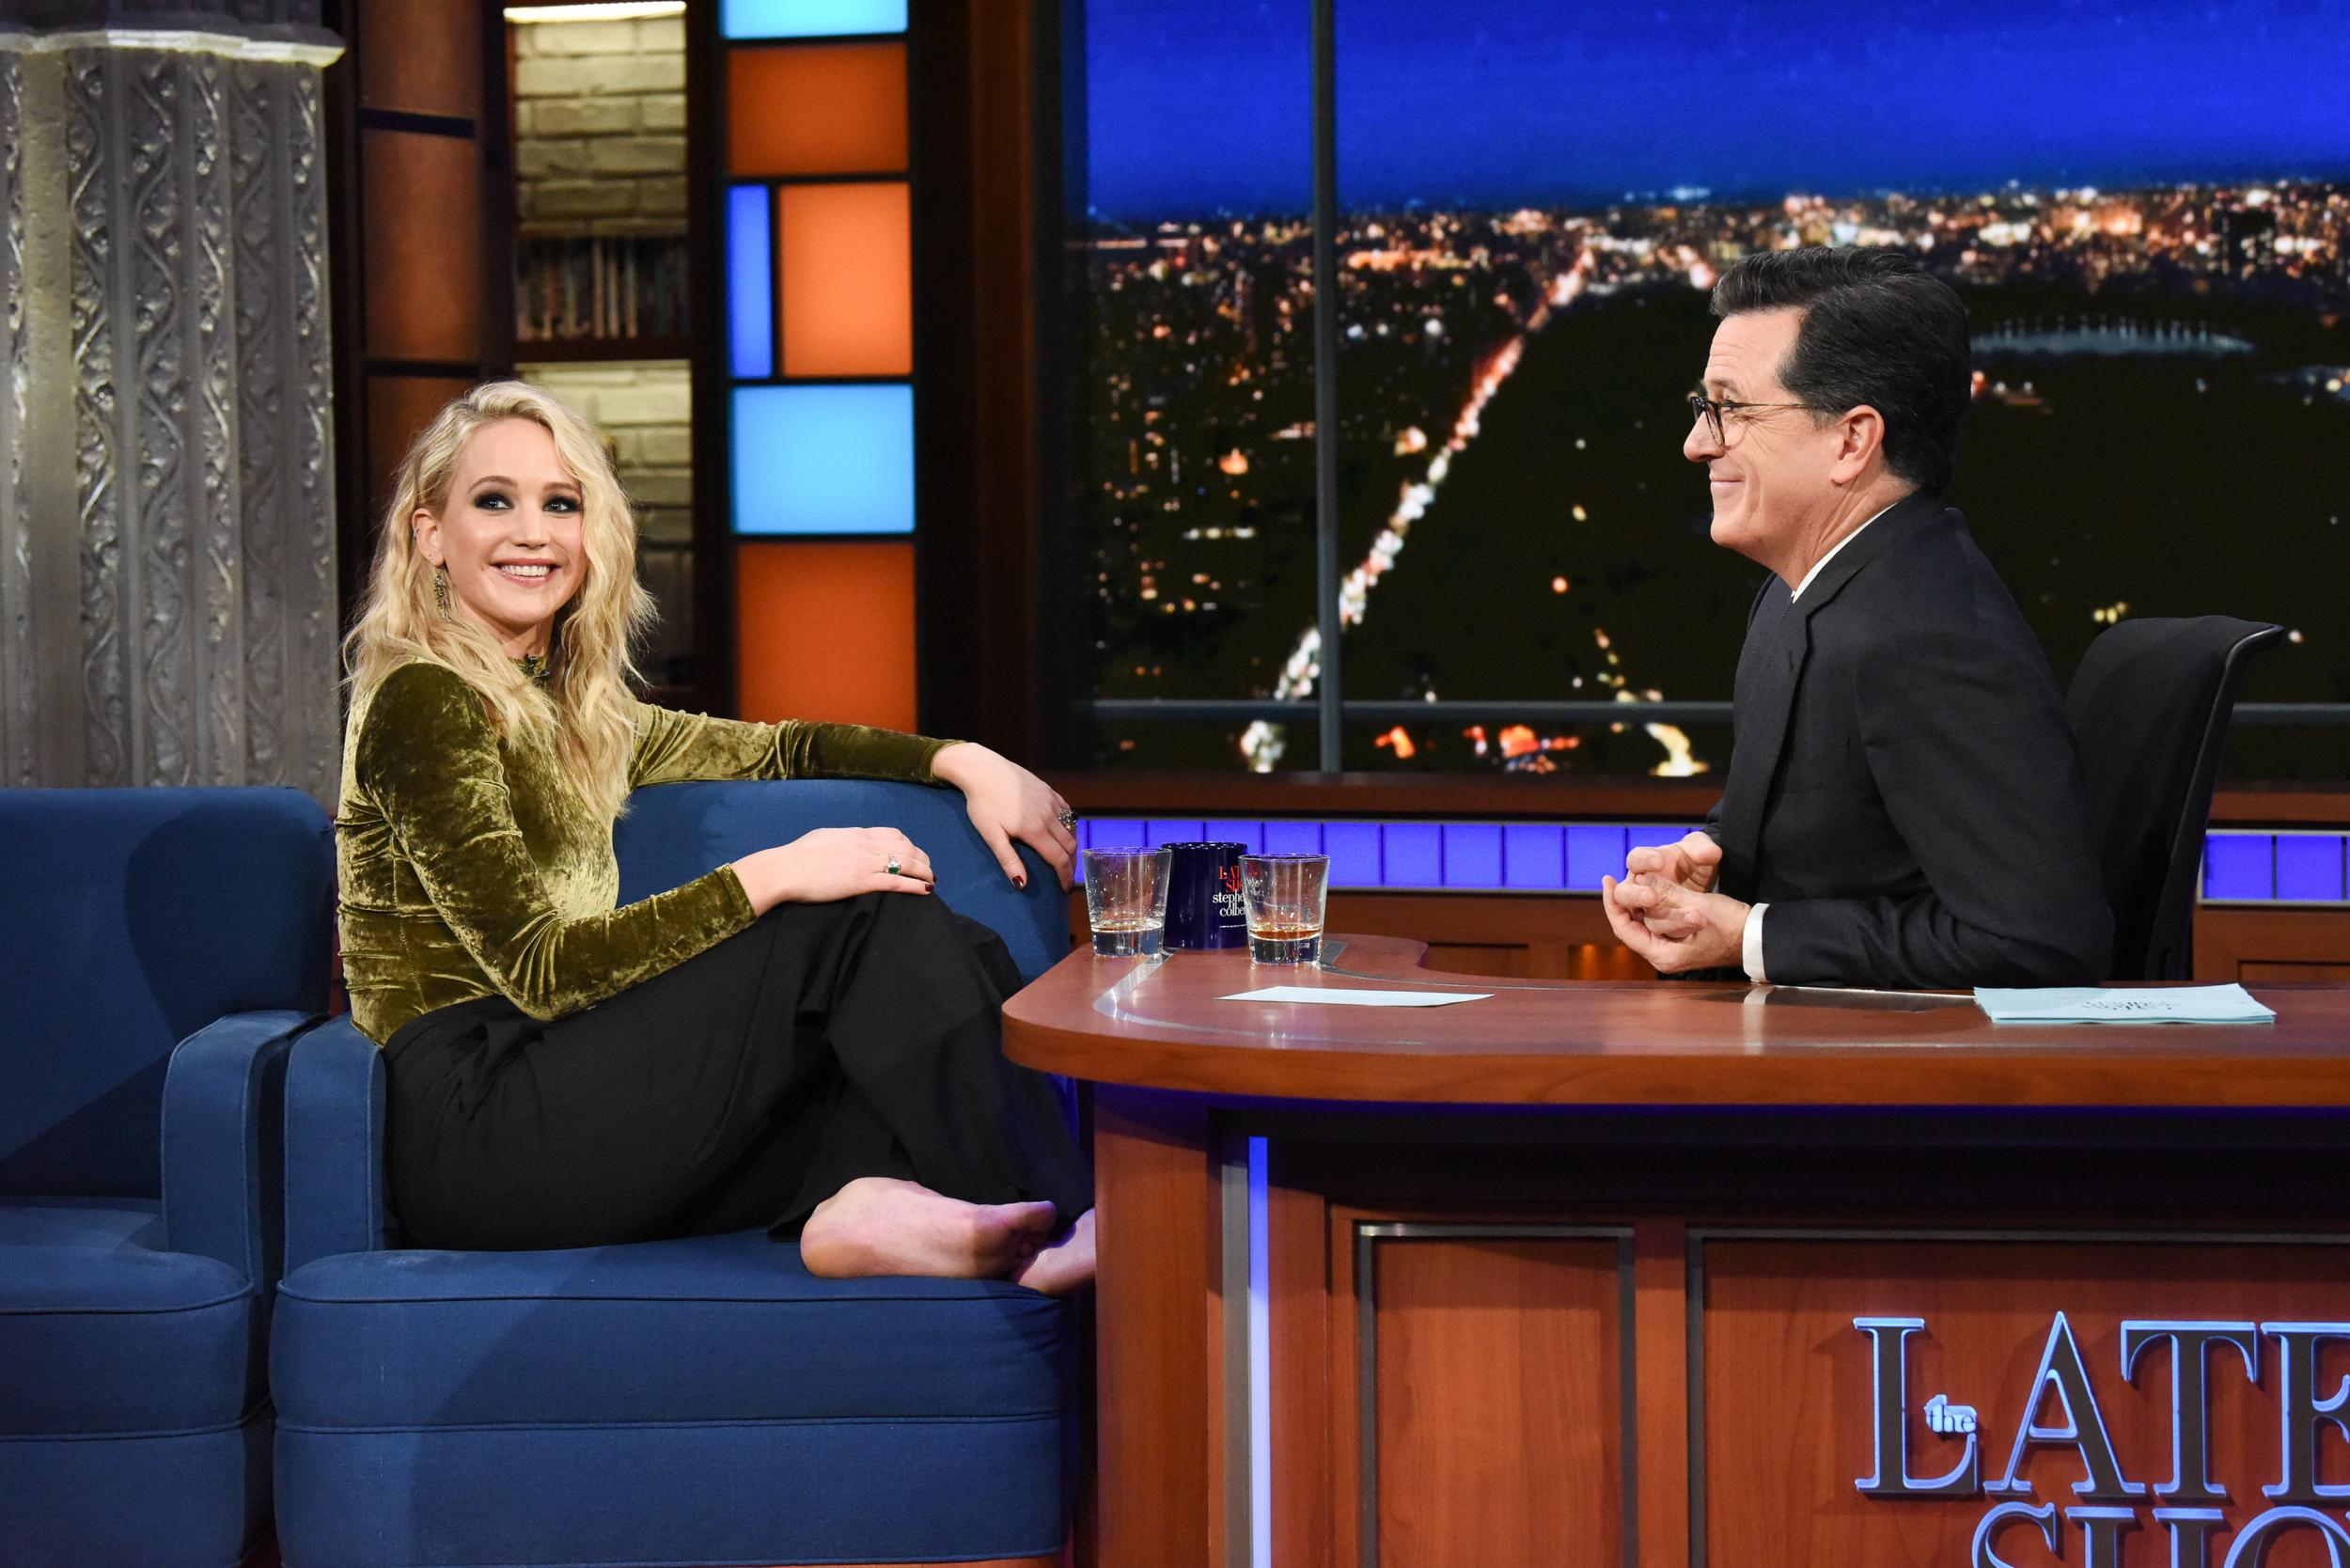 NEW YORK - FEBRUARY 26: The Late Show with Stephen Colbert and guest Jennifer Lawrence during Monday's February 26, 2018 show. (Photo by Scott Kowalchyk/CBS via Getty Images)